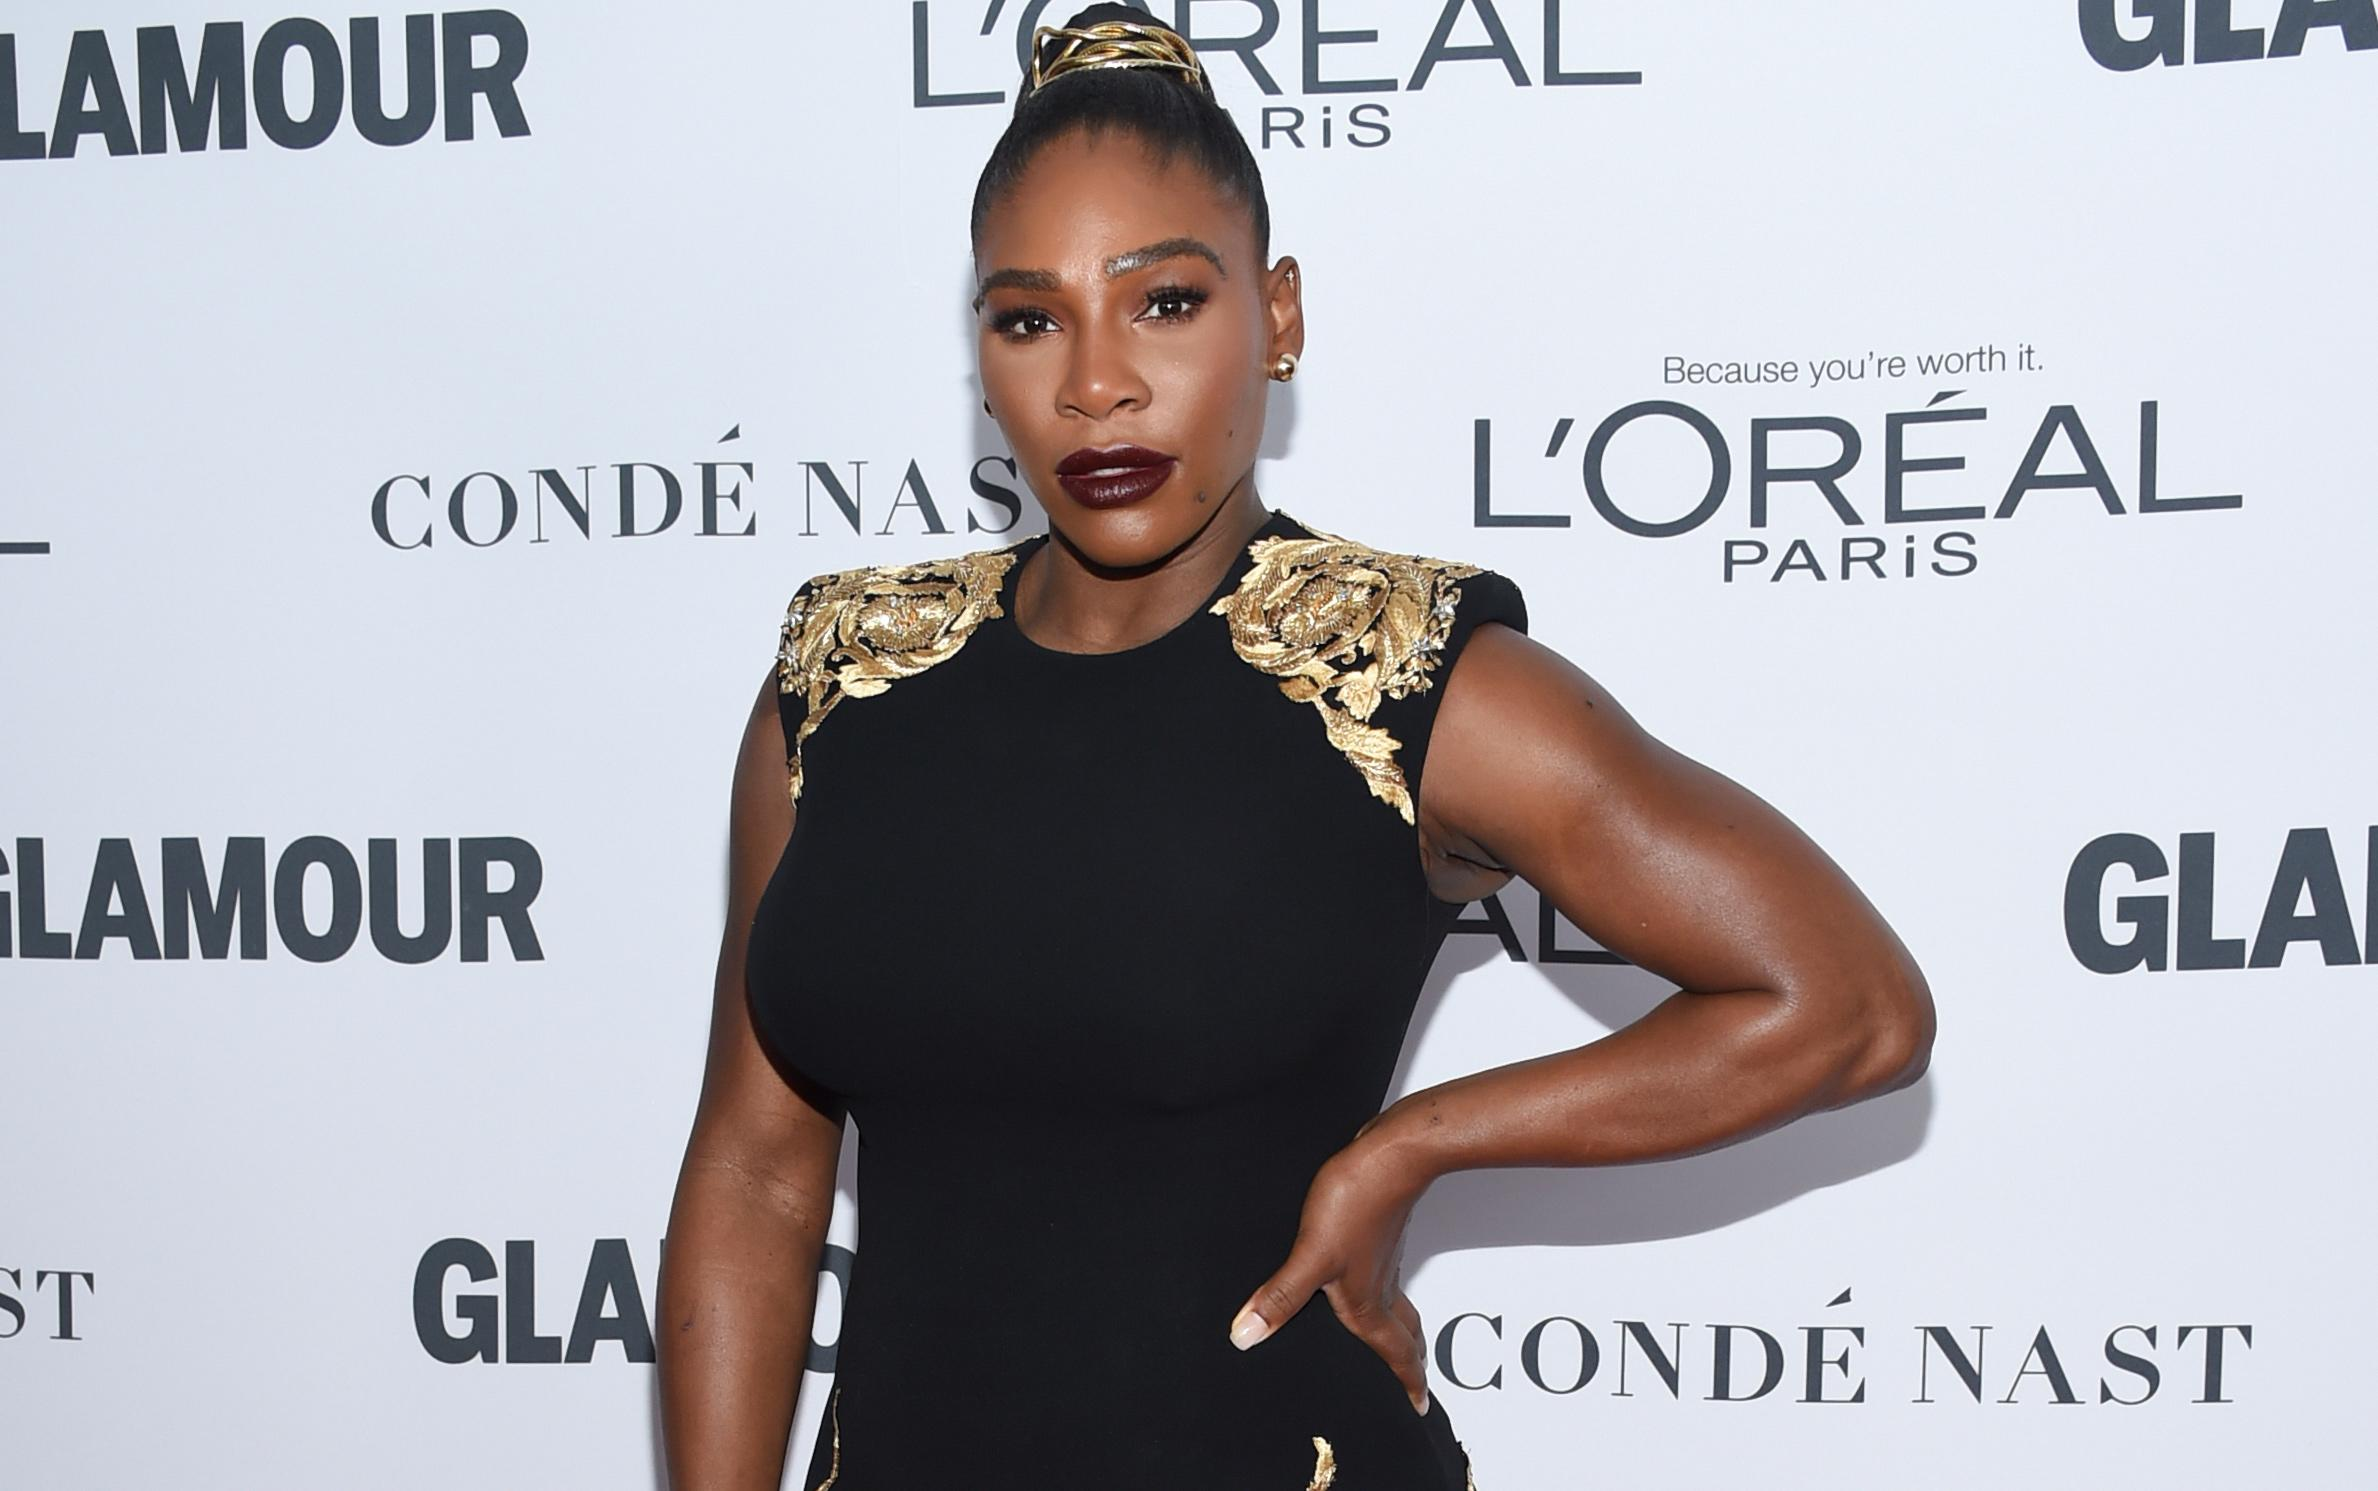 Serena Williams flexes her muscles at the Glamour Women of the Year Awards. (Photo: Getty Images)